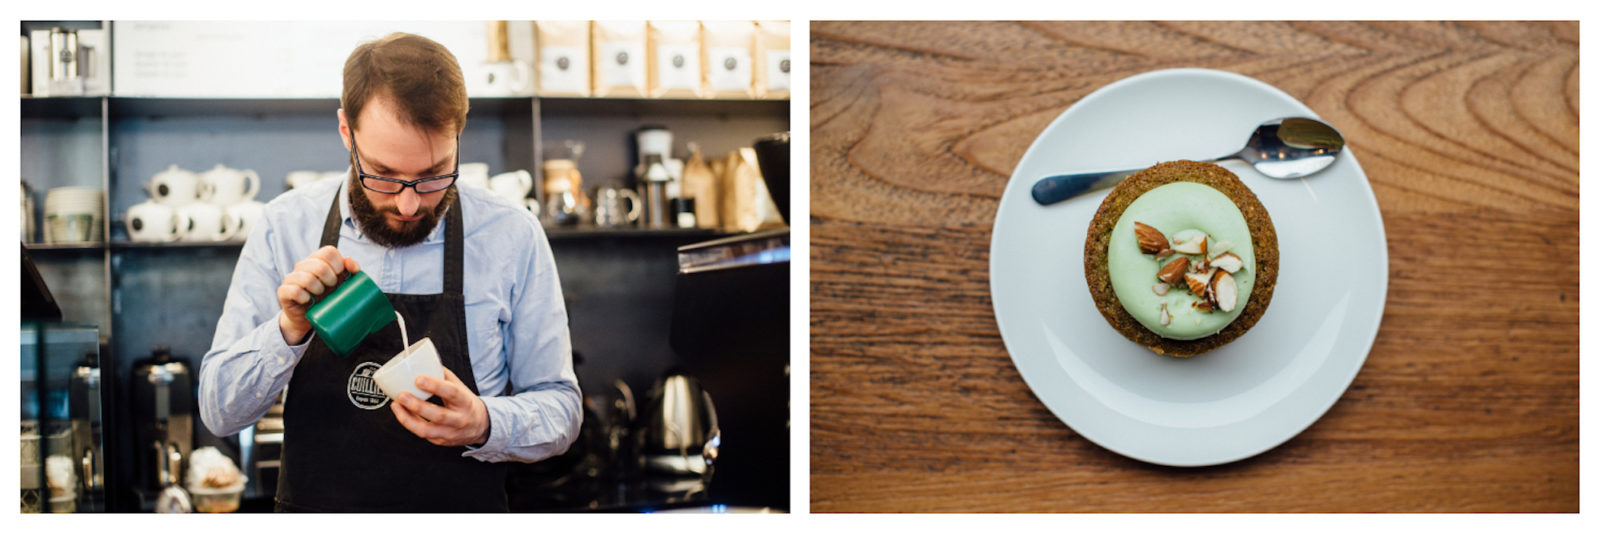 A barista making coffee (left) and a homemade cake with icing at Cuillier coffee shop in Paris' St Germain Neighborhood (right).